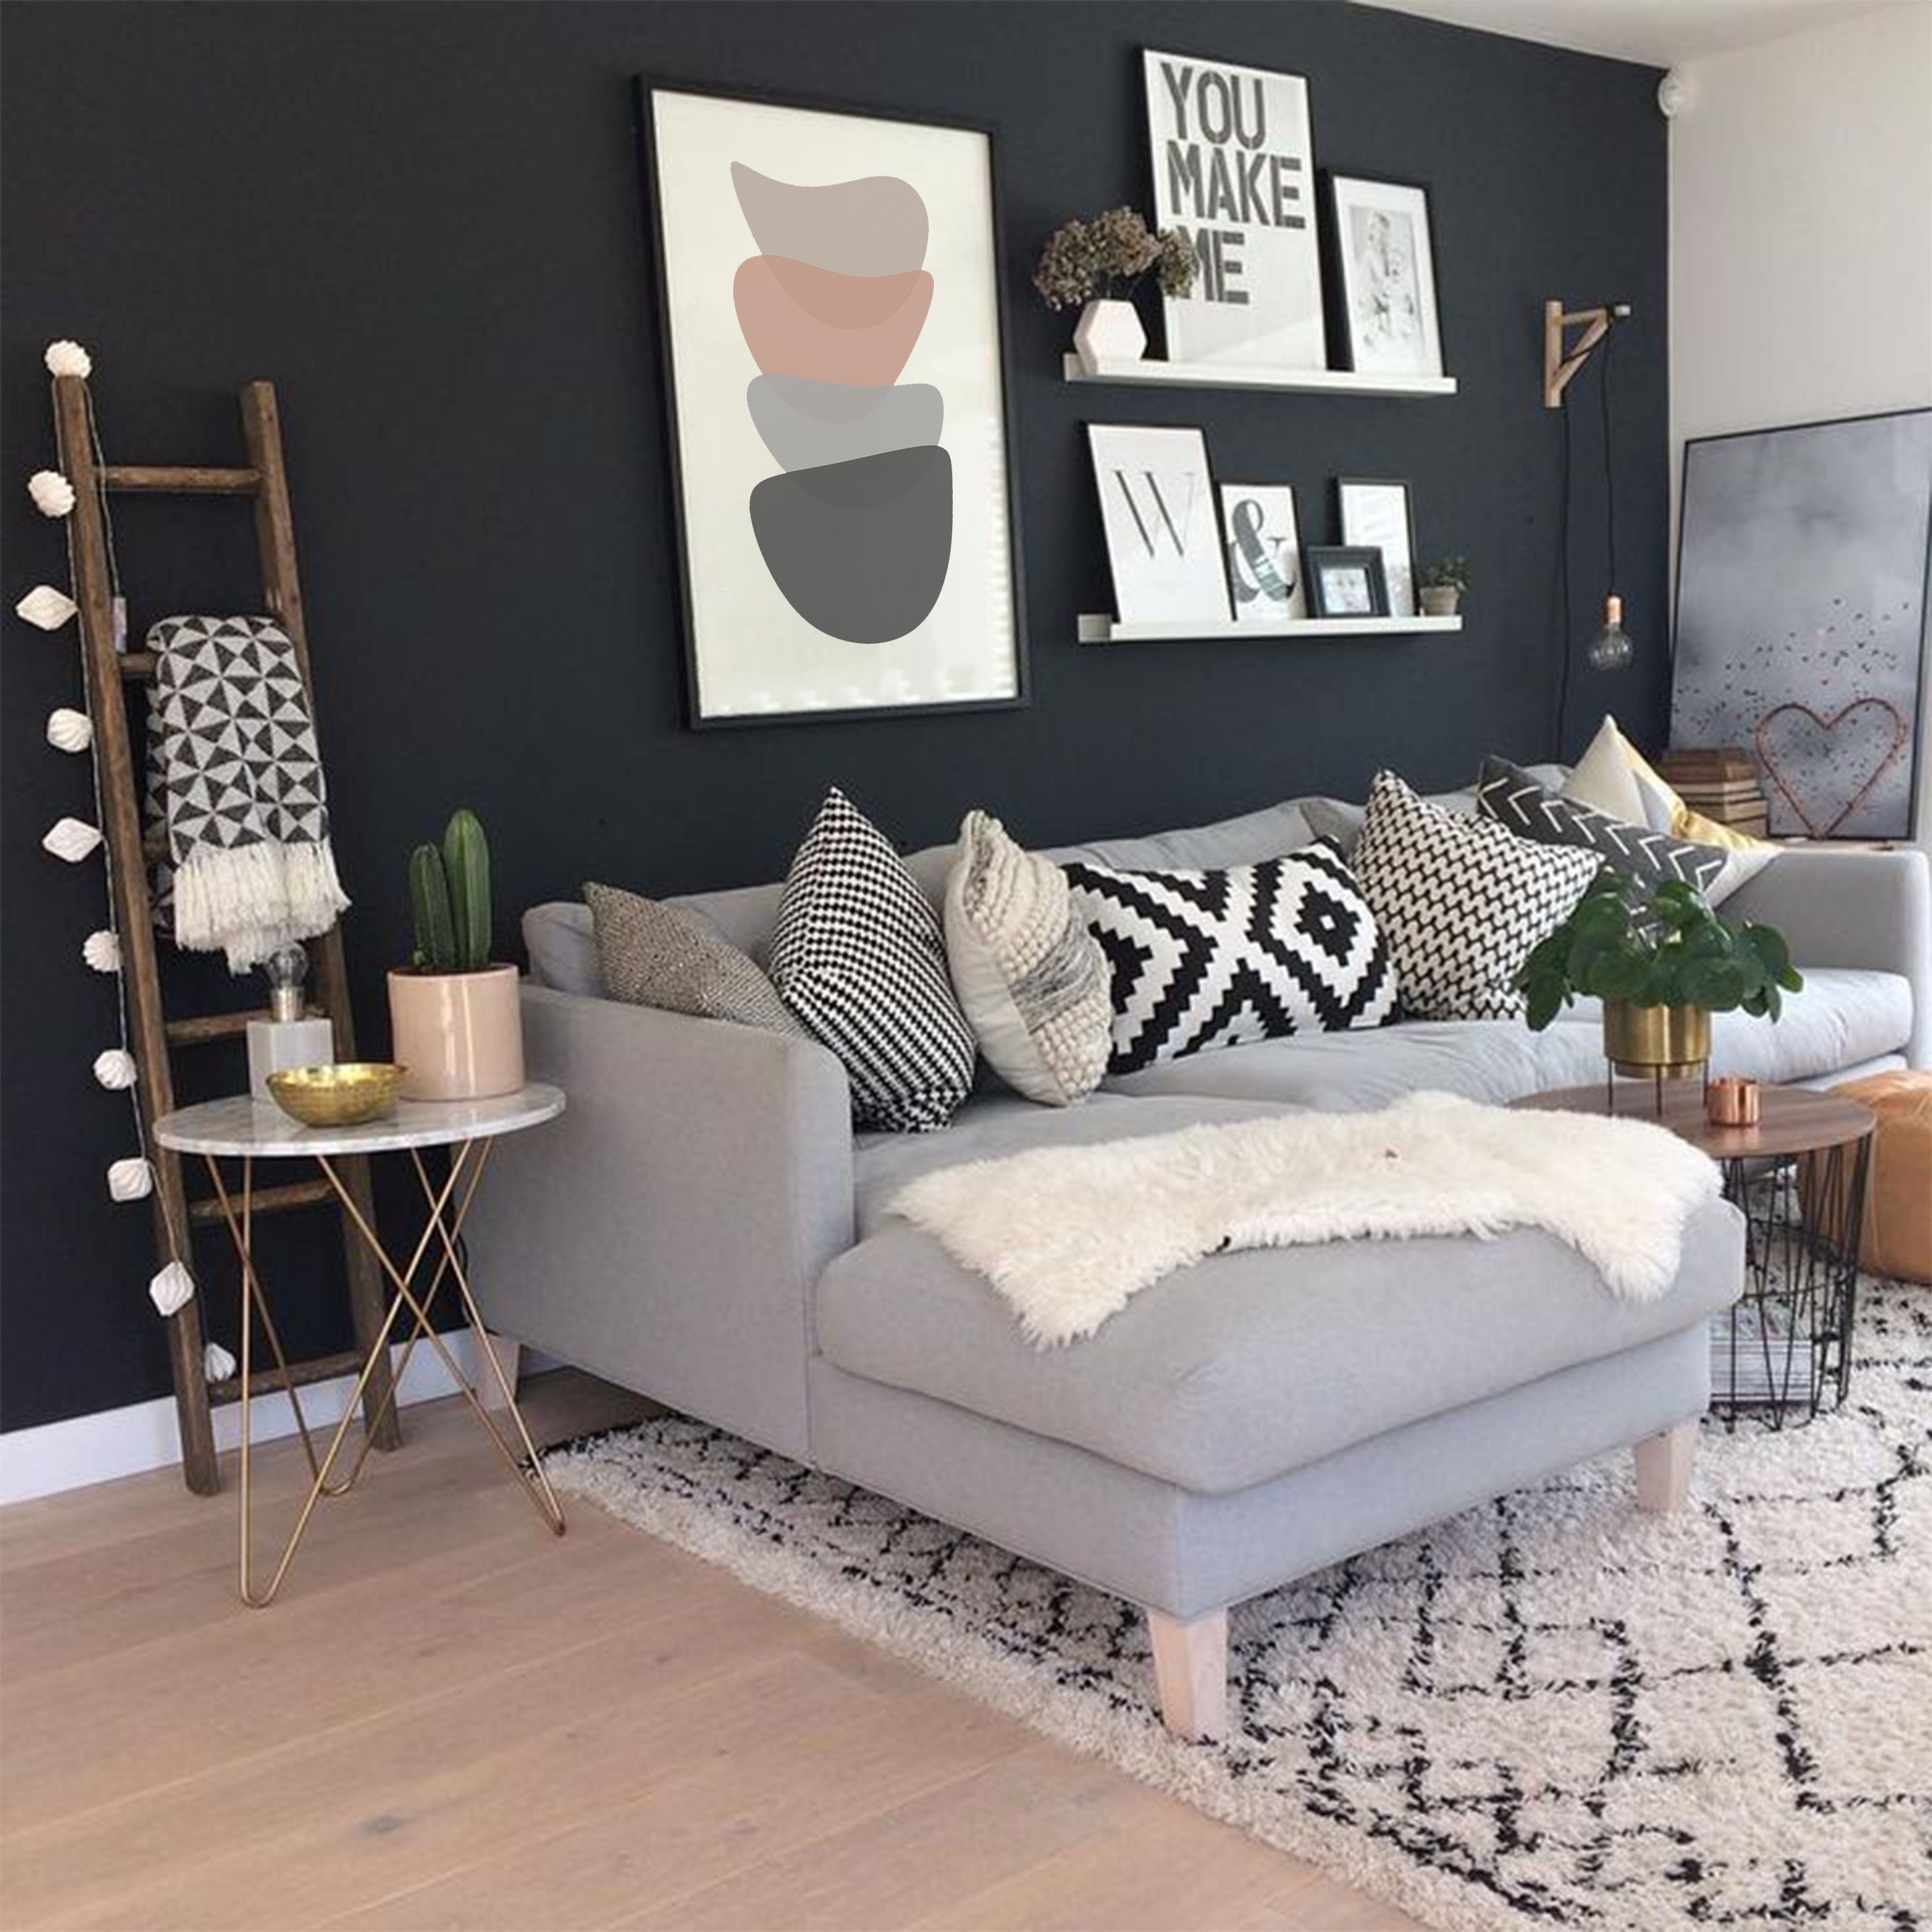 Pin On Home Ideas Home wall decor for living room